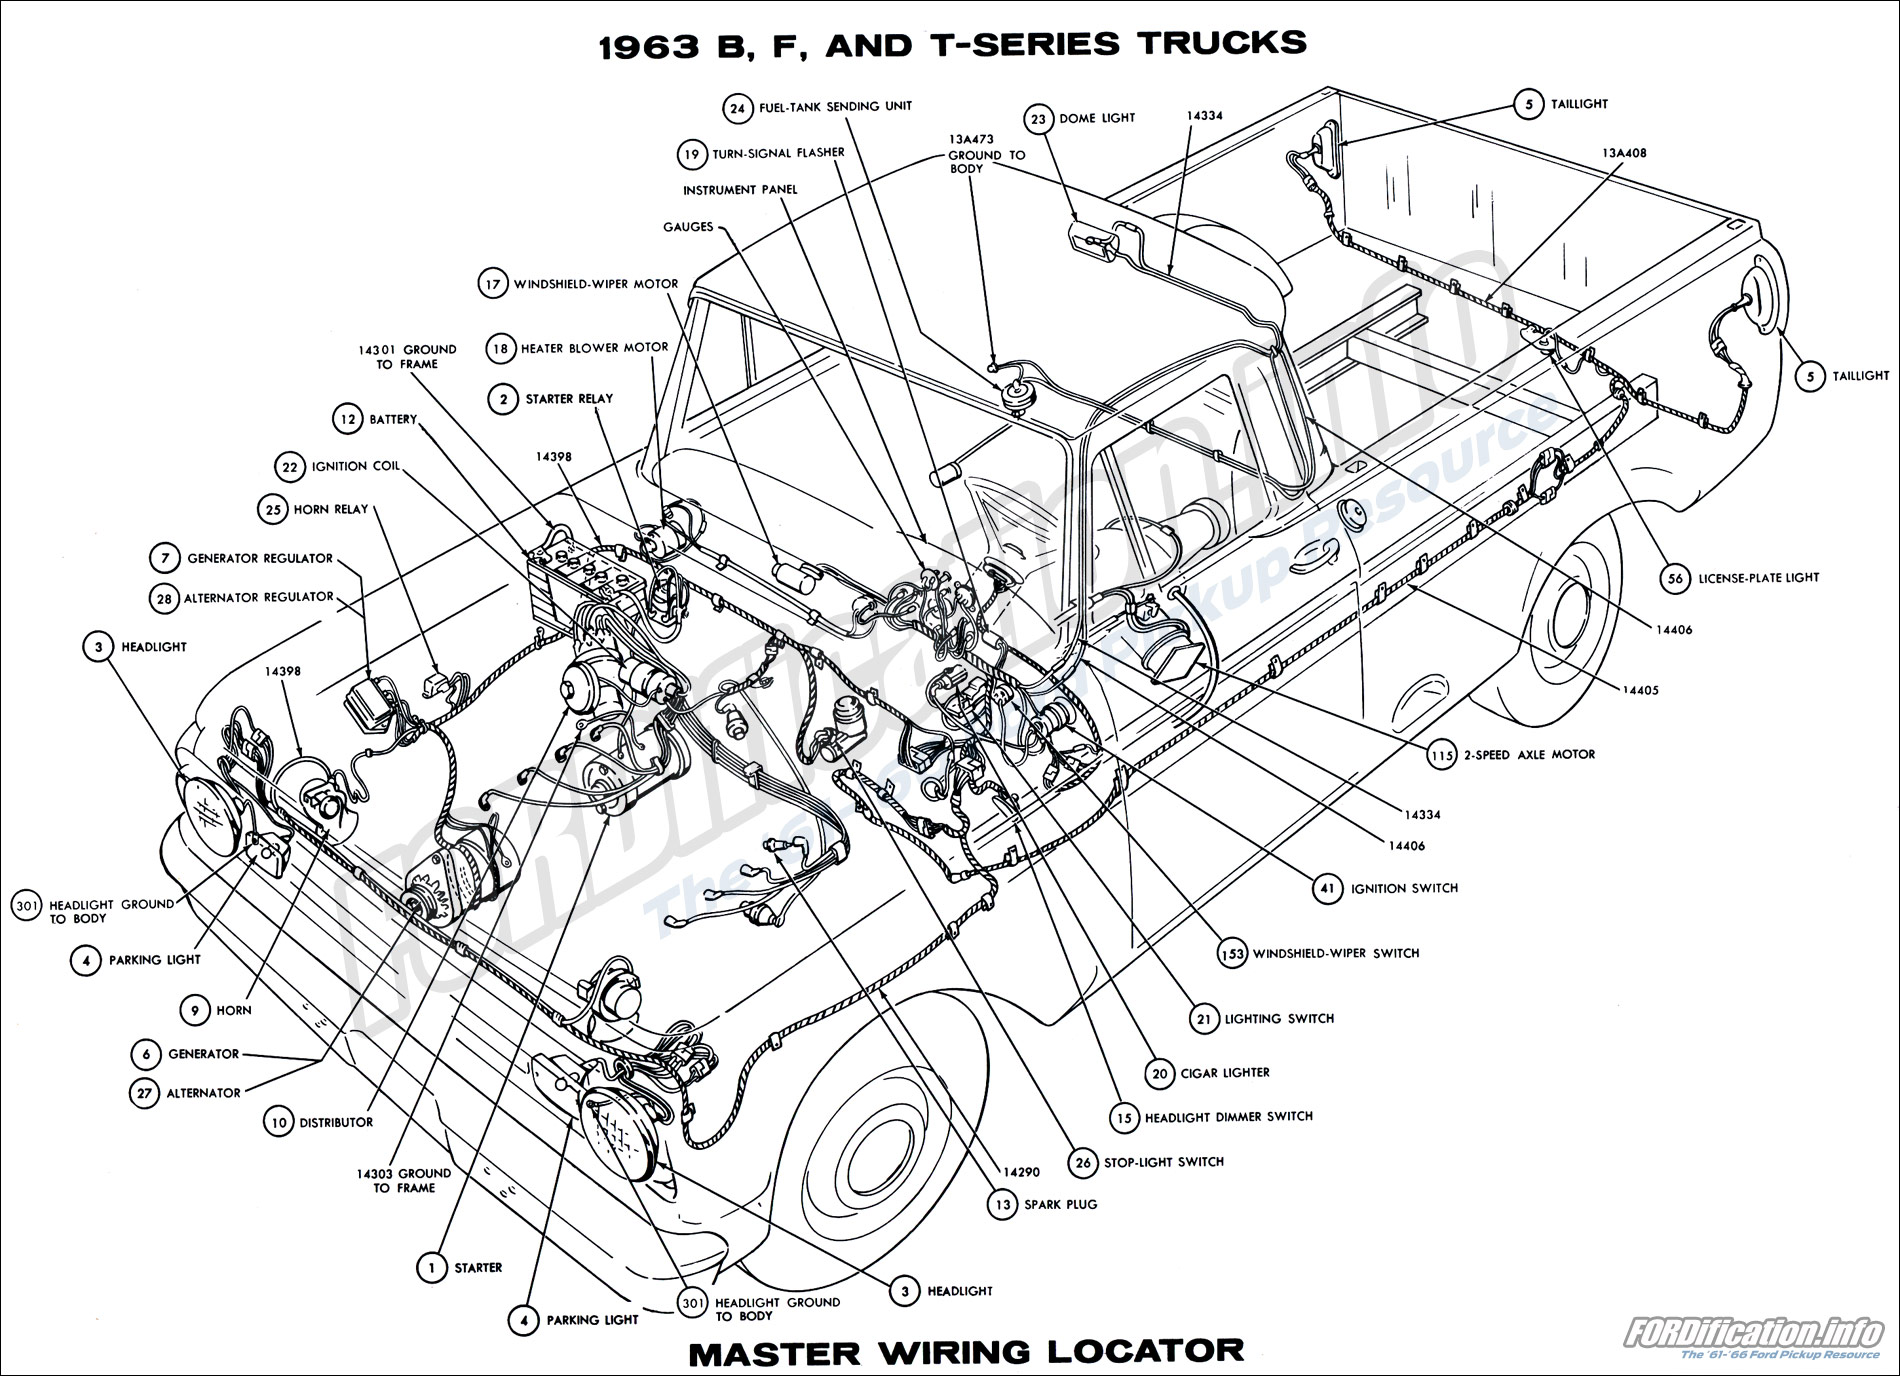 1962 ford truck wiring diagram online schematics diagram rh delvato co 1963  Ford 1964 Ford Fairlane